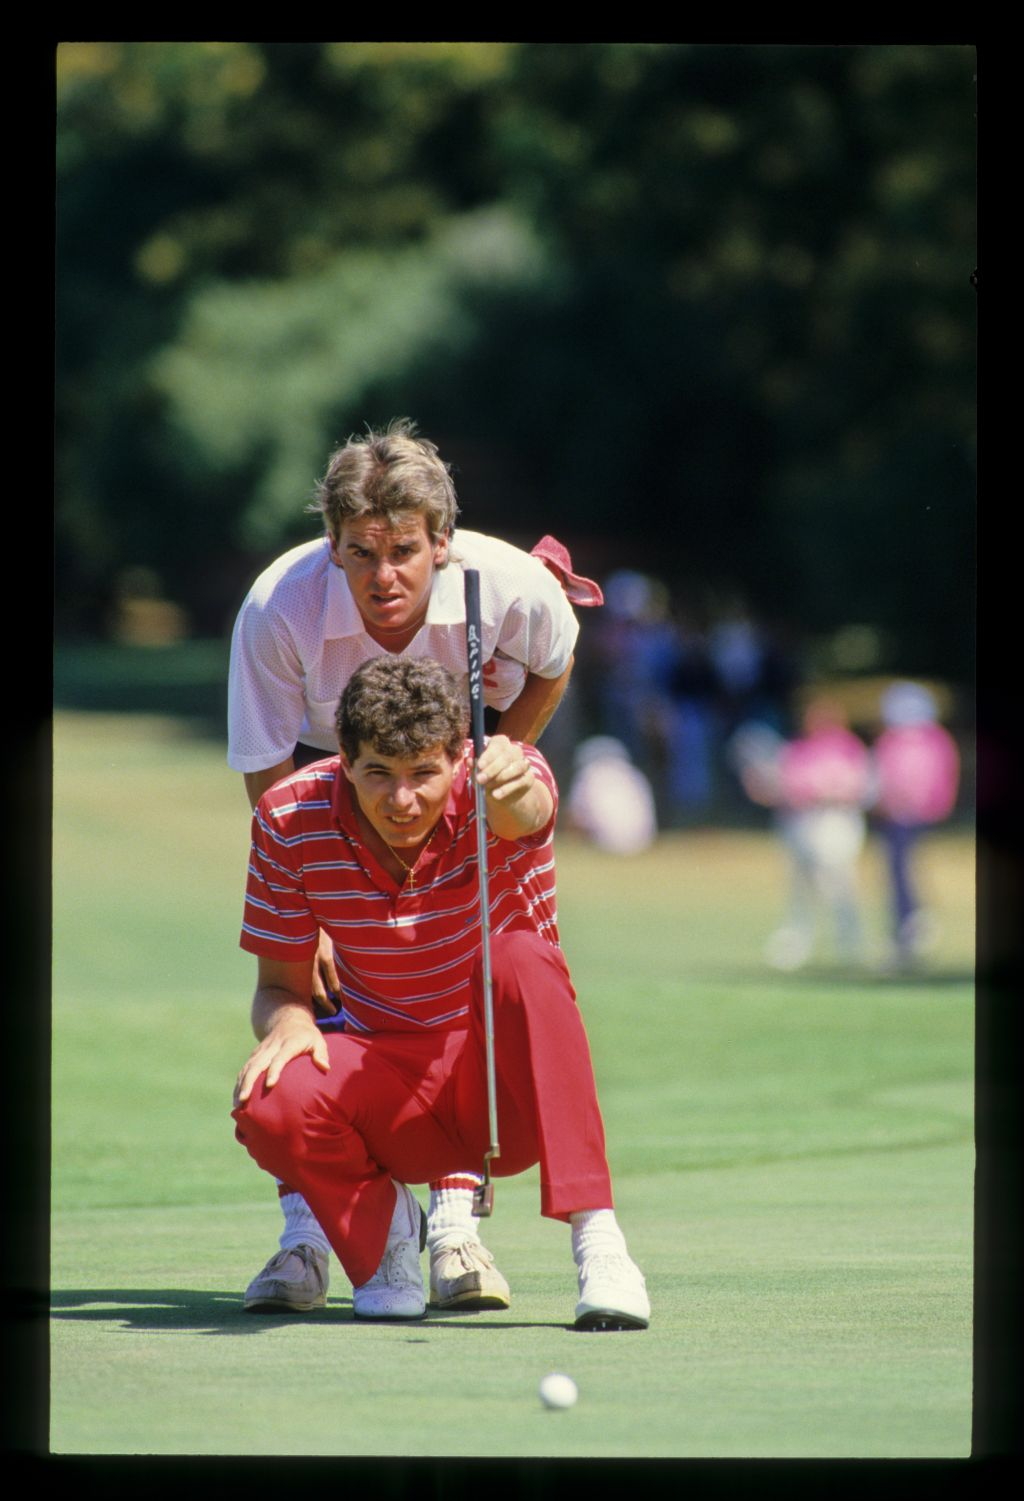 Philip Parkin and his caddie lining up a putt during the 1986 Australian Masters